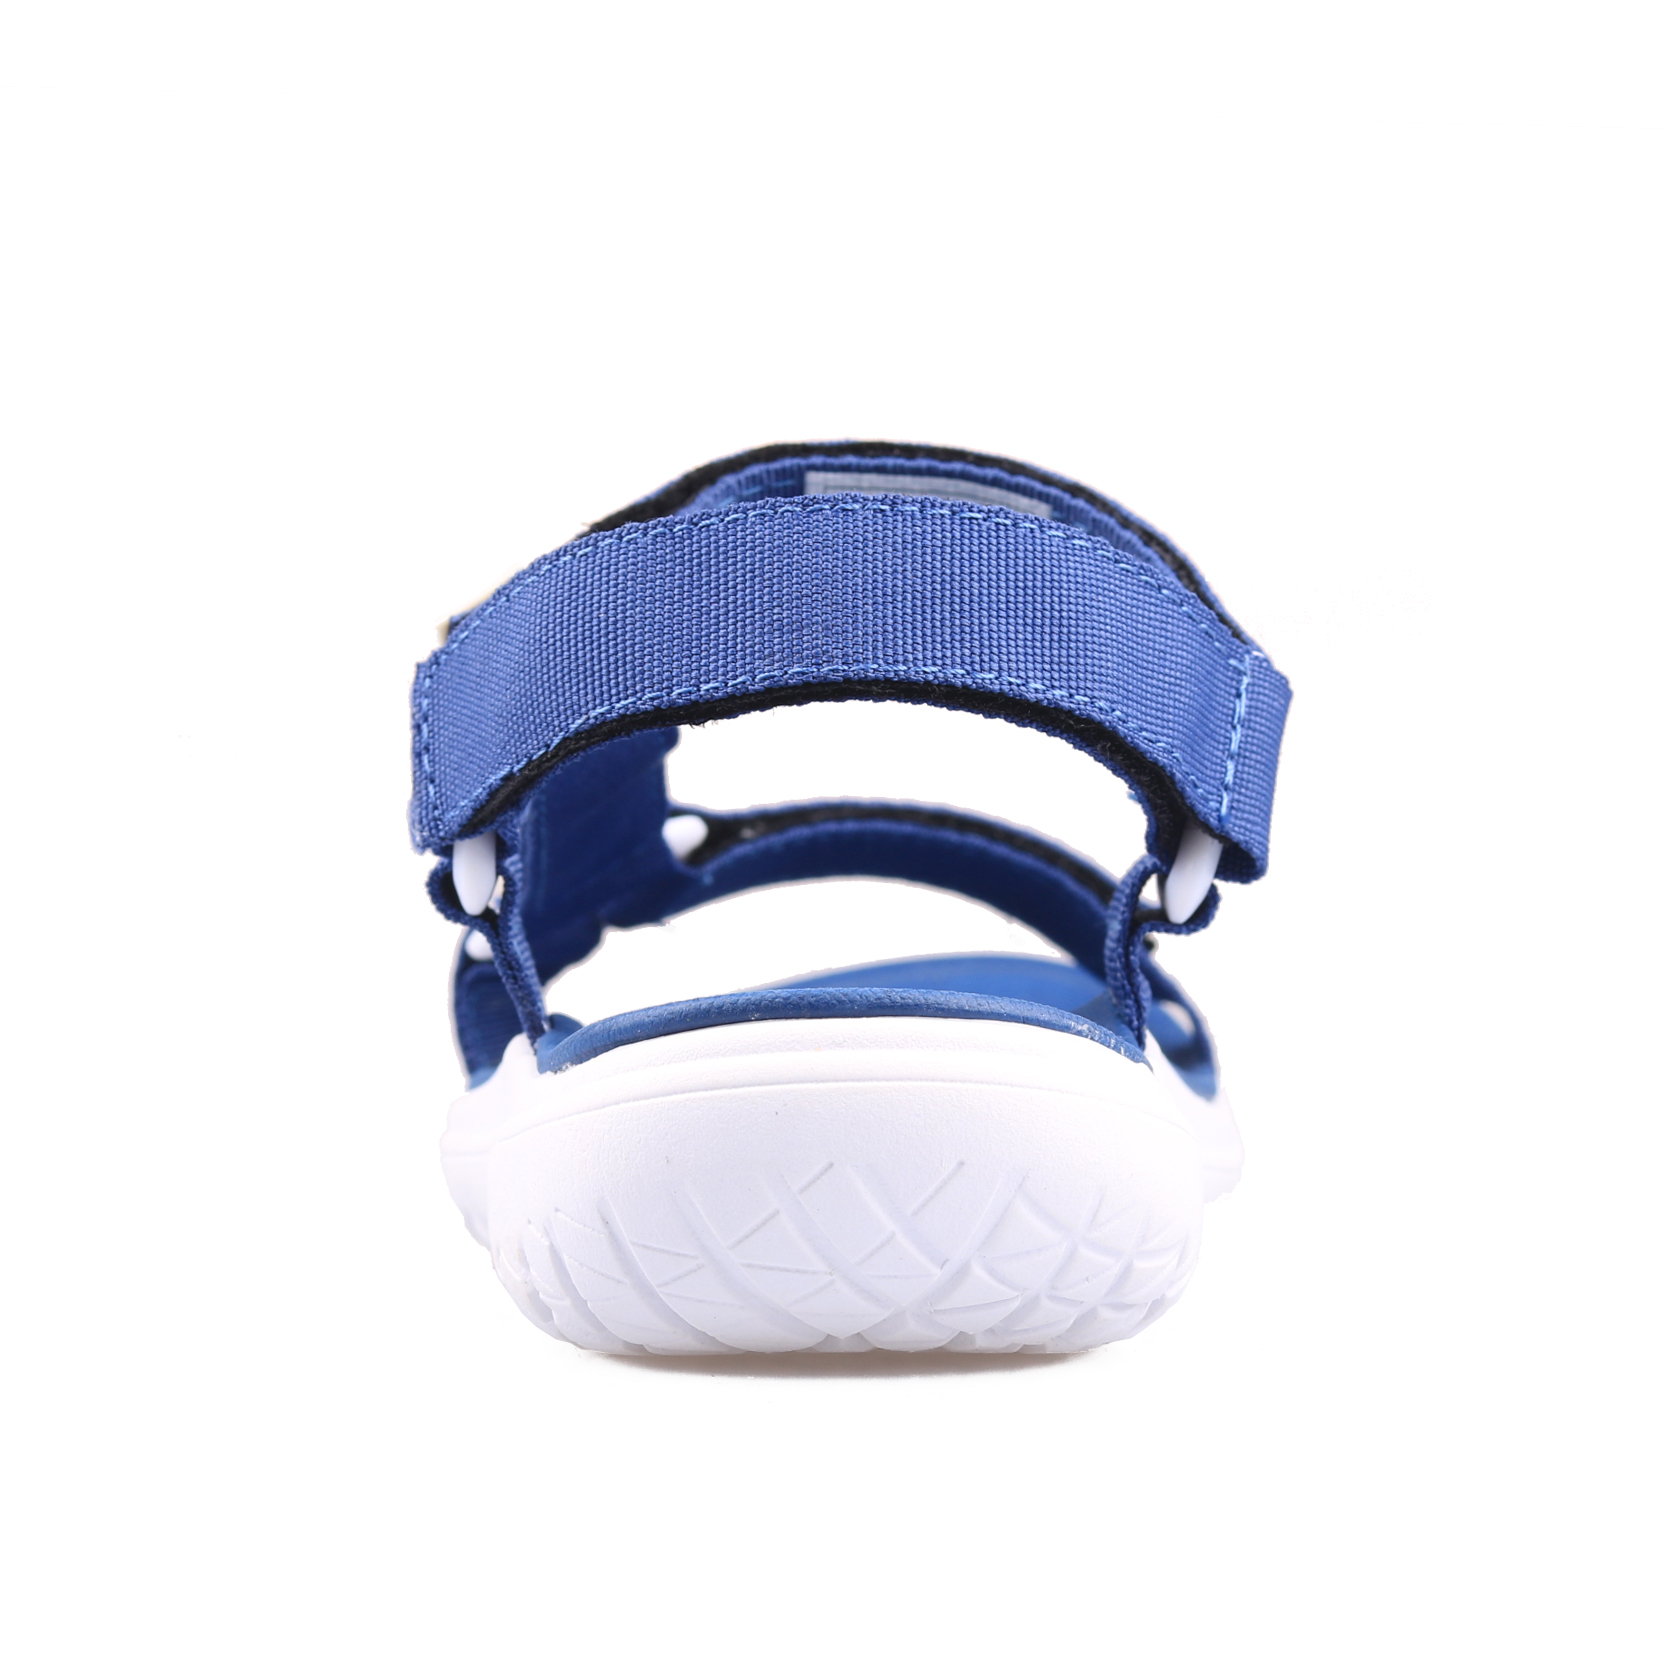 Image 5 - GRITION Women Outdoor Quick Drying Flat Sandals Ladies Soft Light Weight Beach Sandals Fashion Summer Casual Walking Shoes BlueBeach & Outdoor Sandals   -